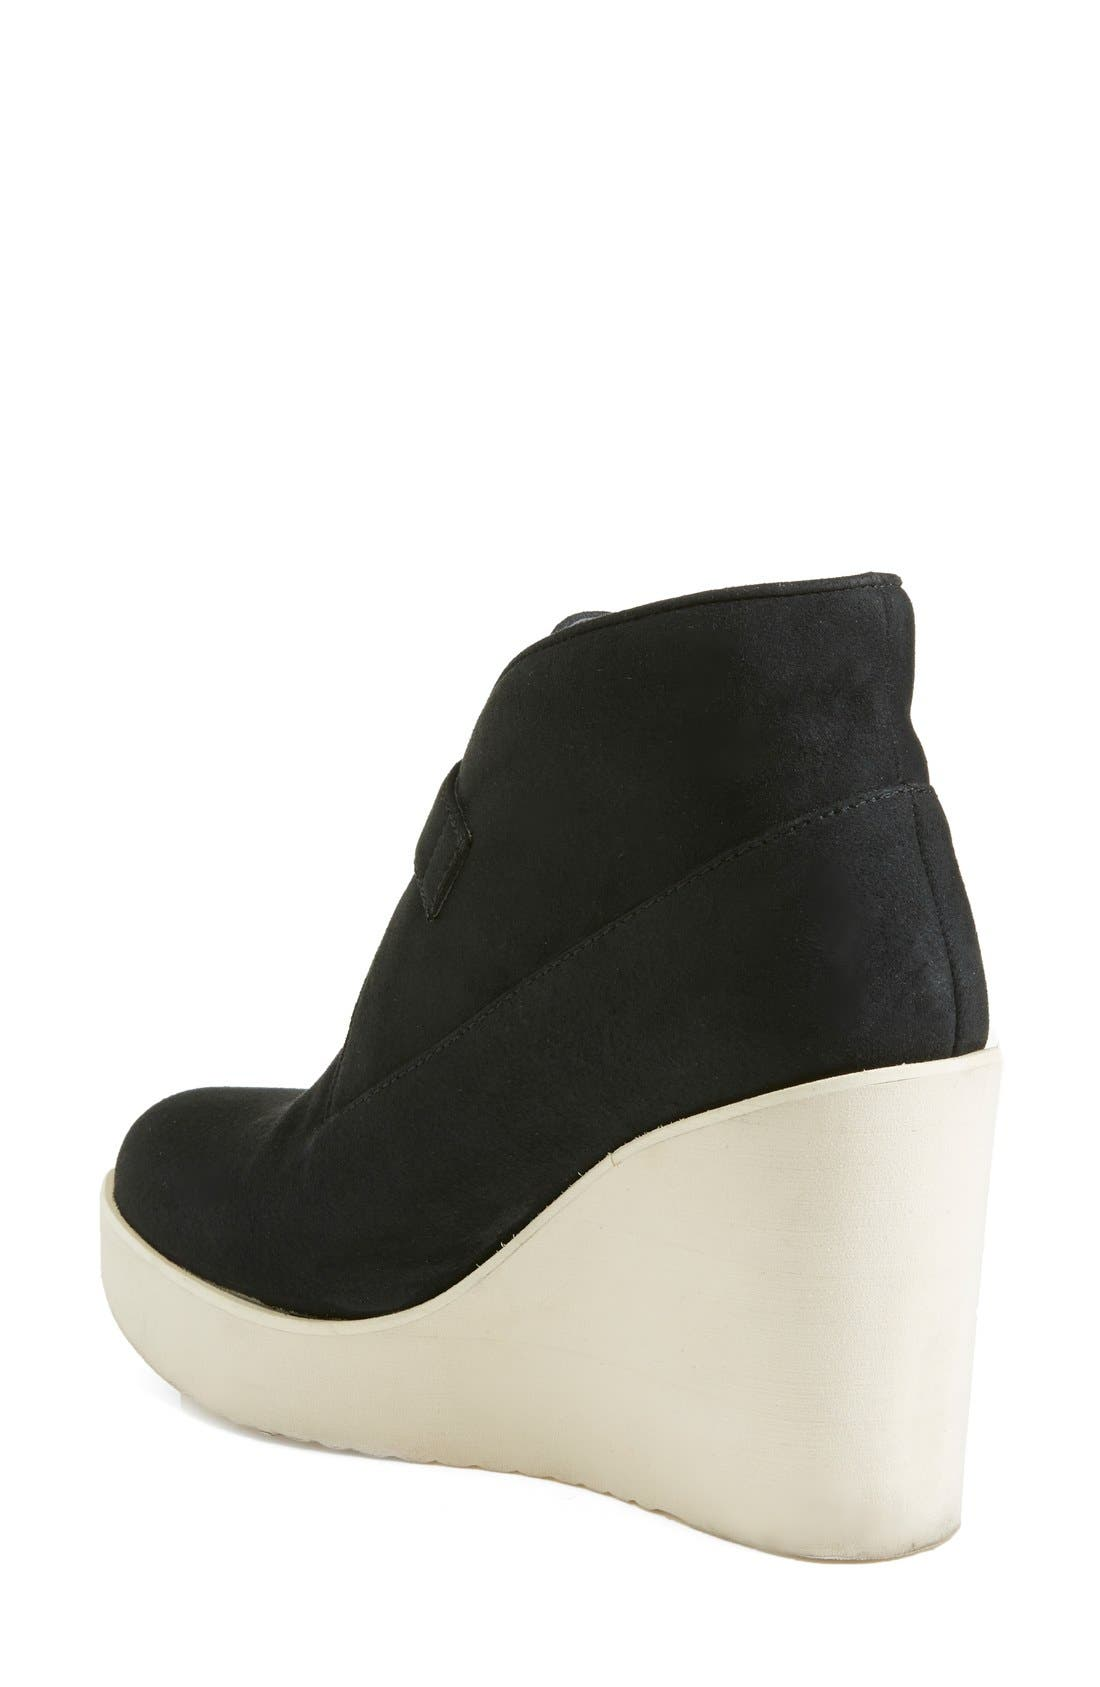 Alternate Image 2  - Stella McCartney Monk Strap Wedge Bootie (Women)